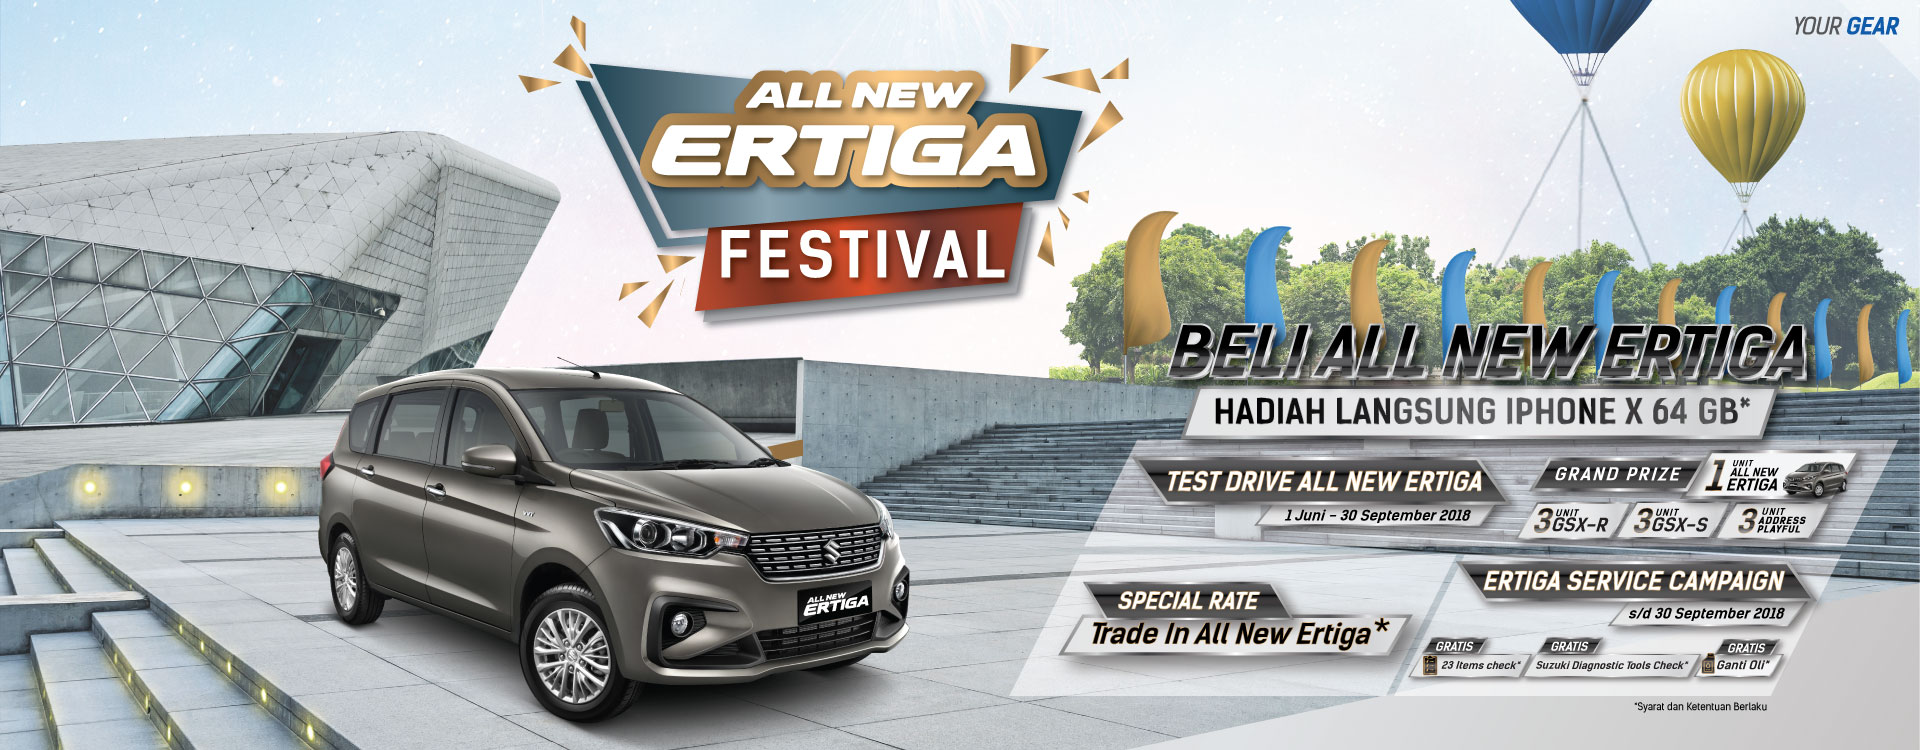 All New Ertiga Festival